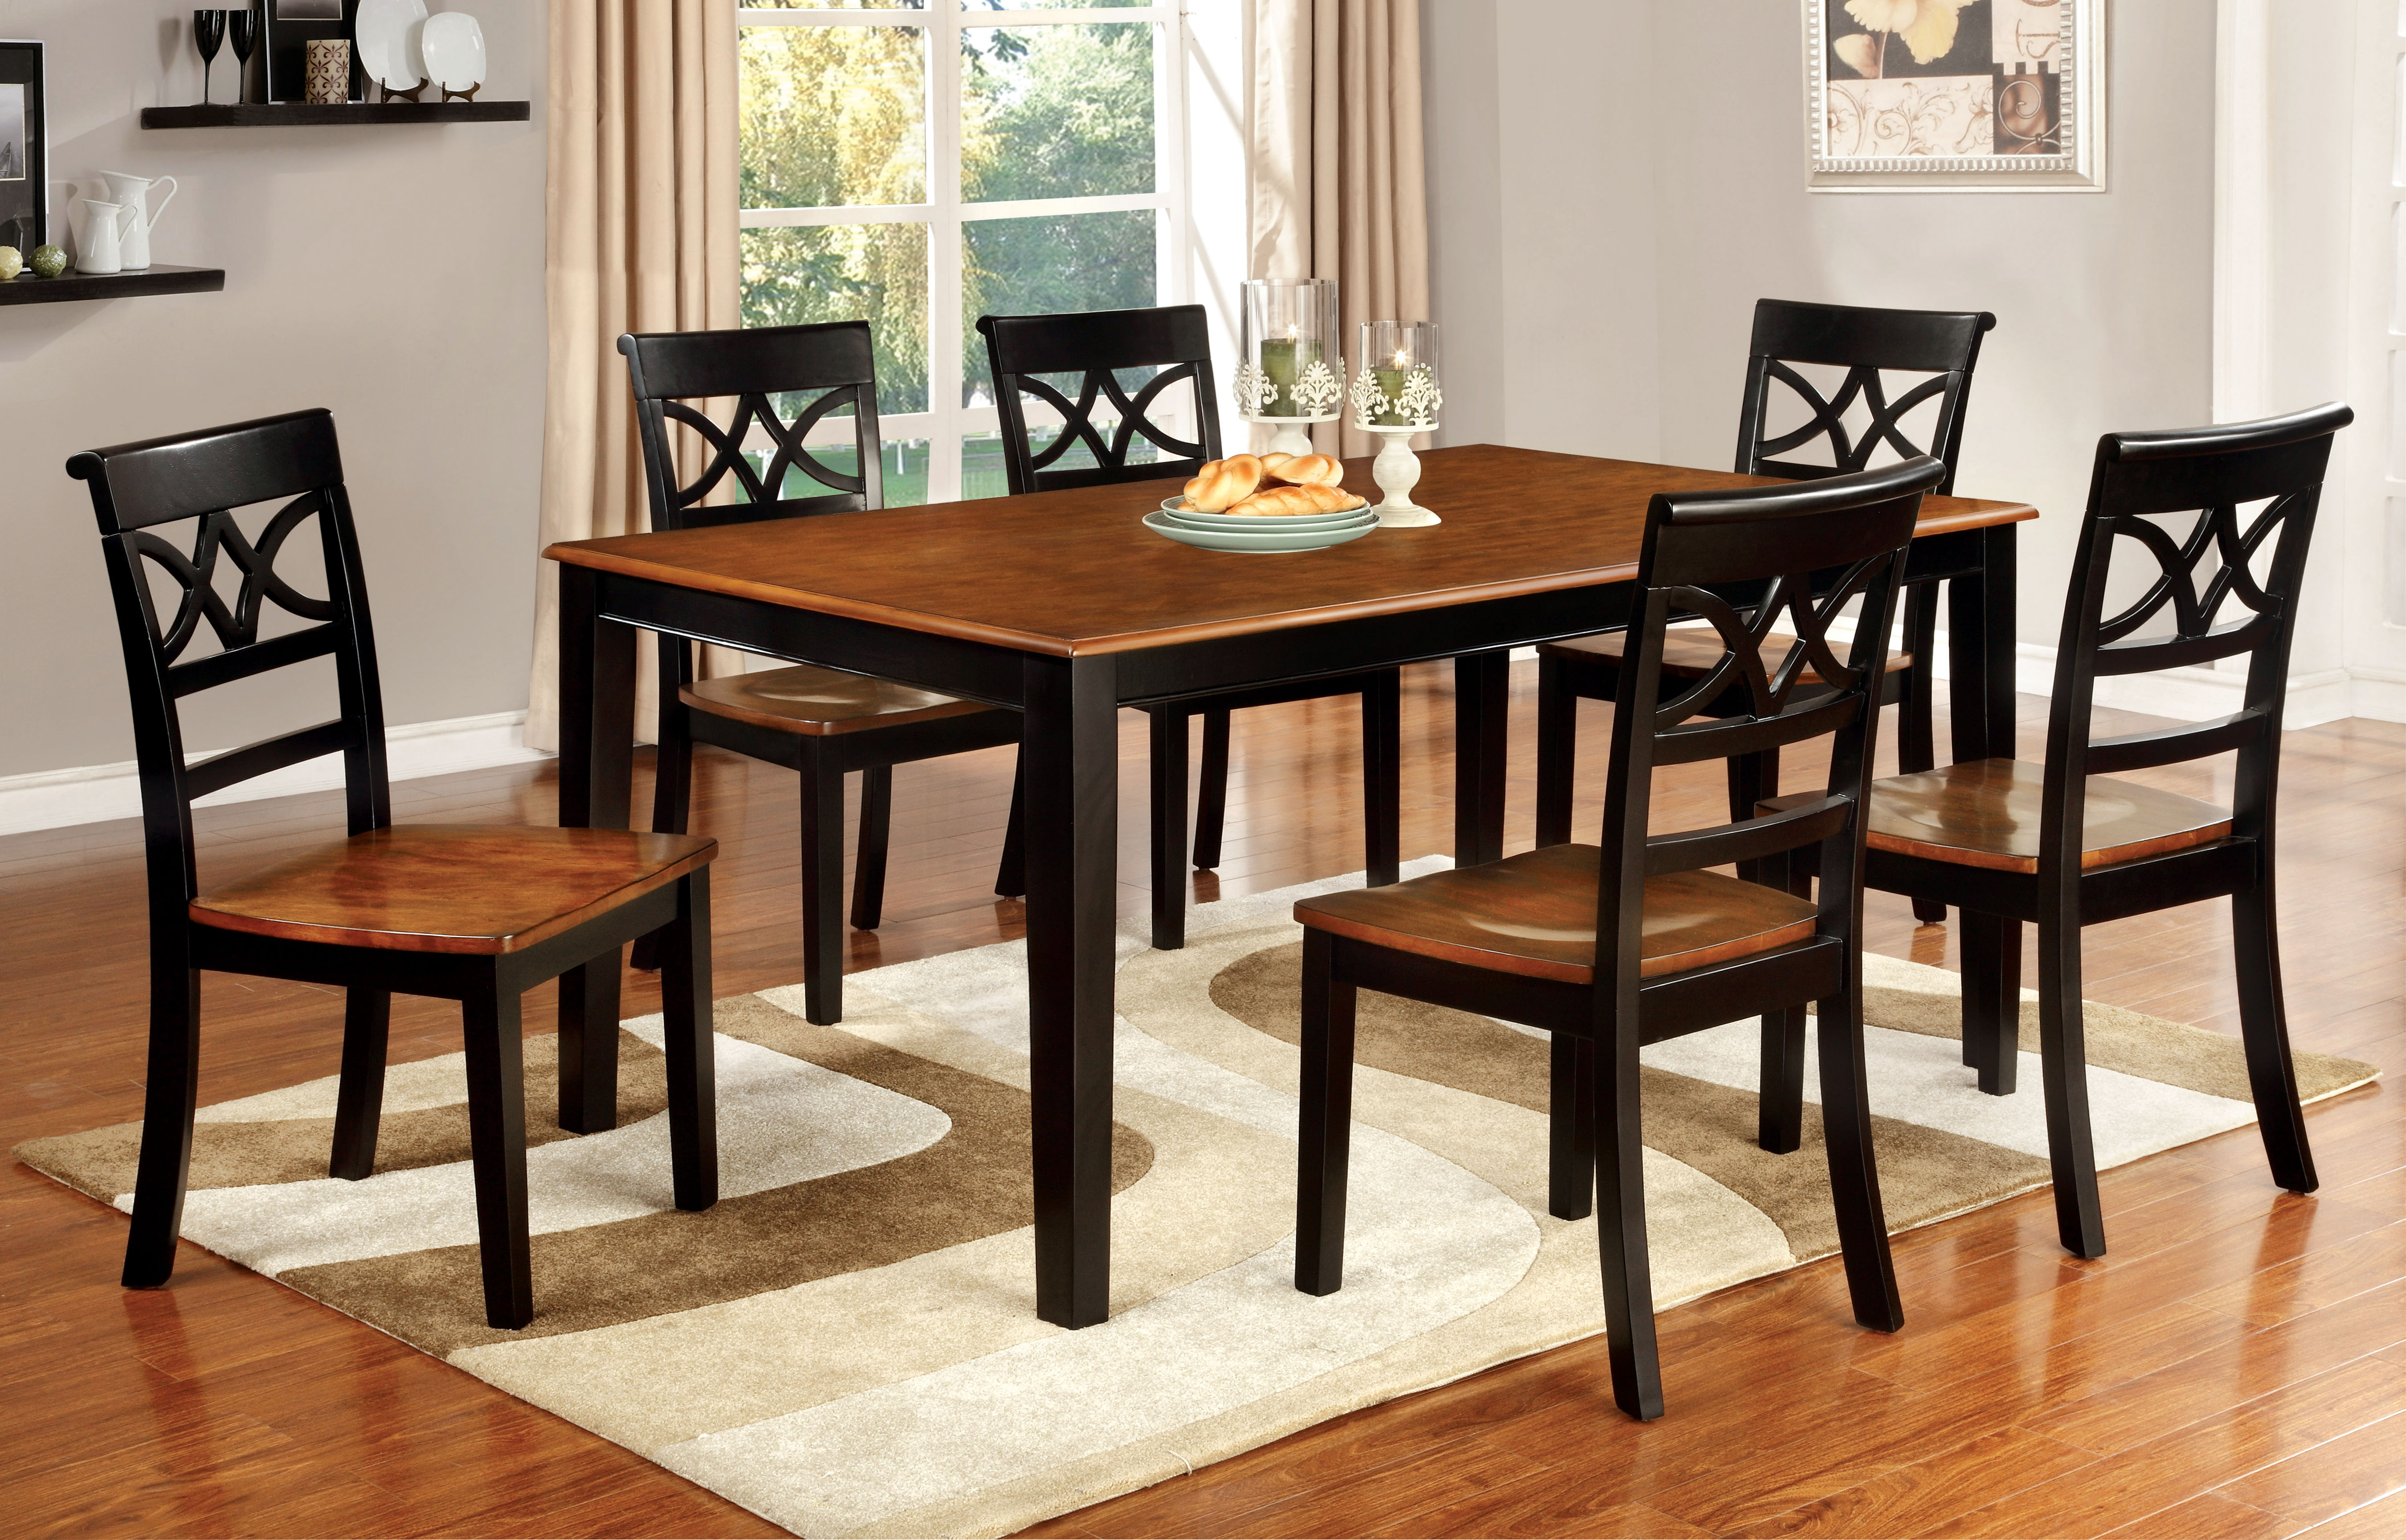 p P two tone kitchen table Furniture of America Two Tone Adelle Country Style Dining Table Home Furniture Dining Kitchen Furniture Dining Tables